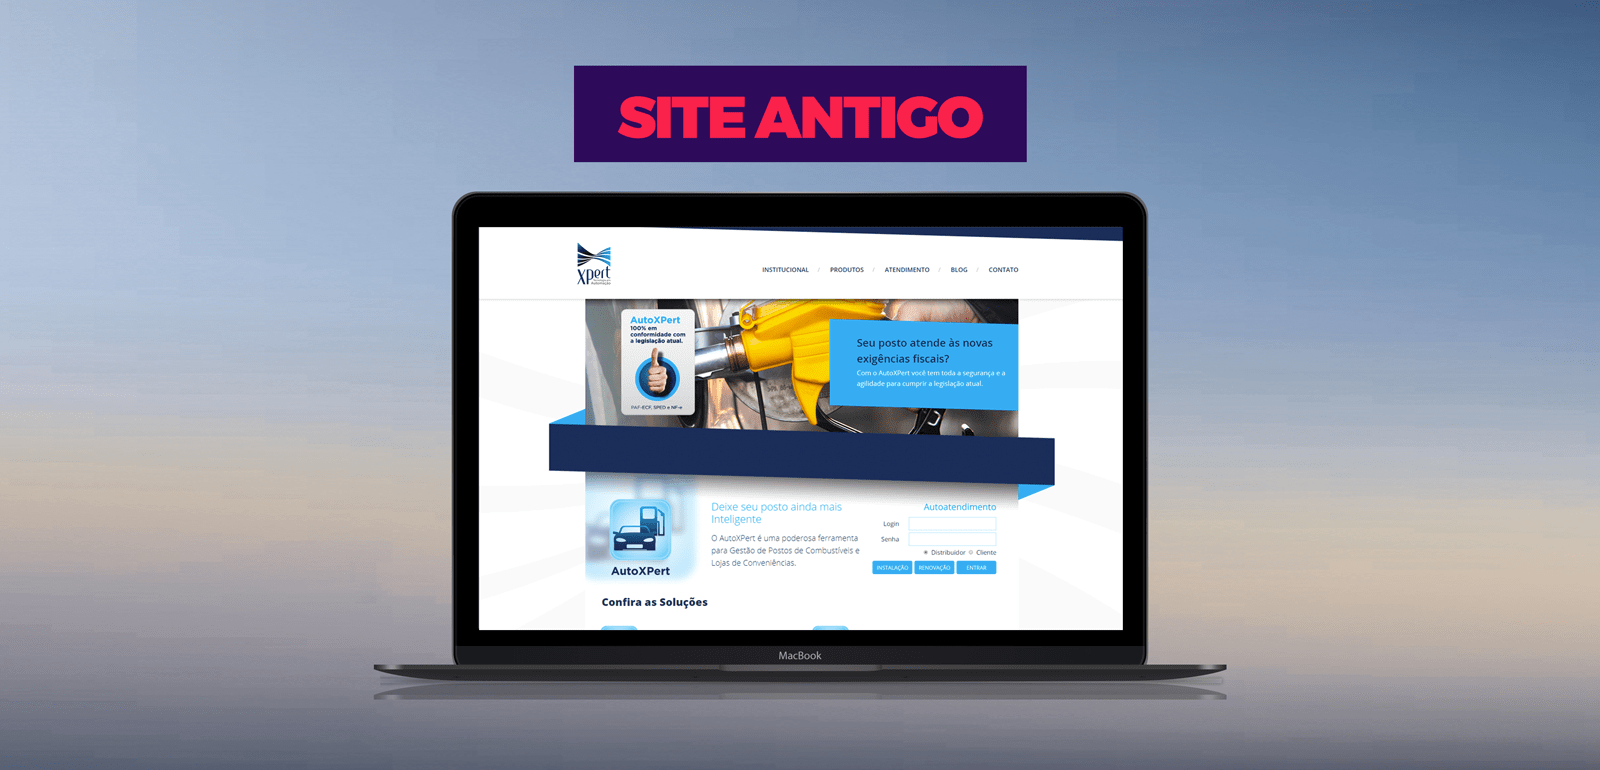 Fluxo Marketing Digital XPert Site Antigo